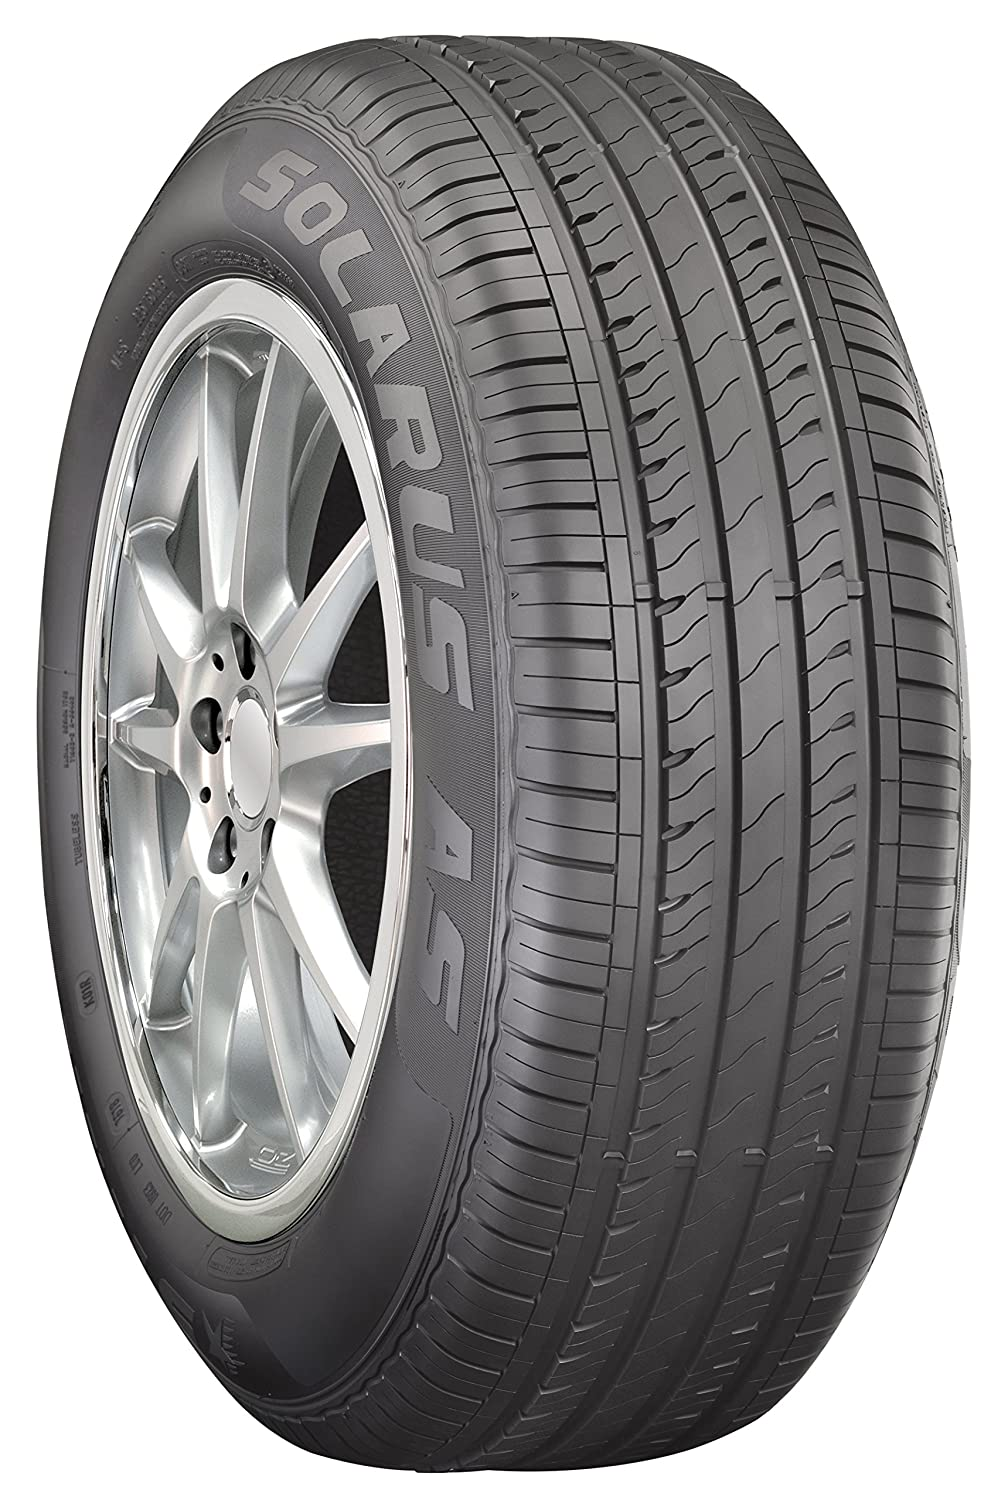 Starfire Solarus AS All-Season Radial Tire-195/60R15 88H